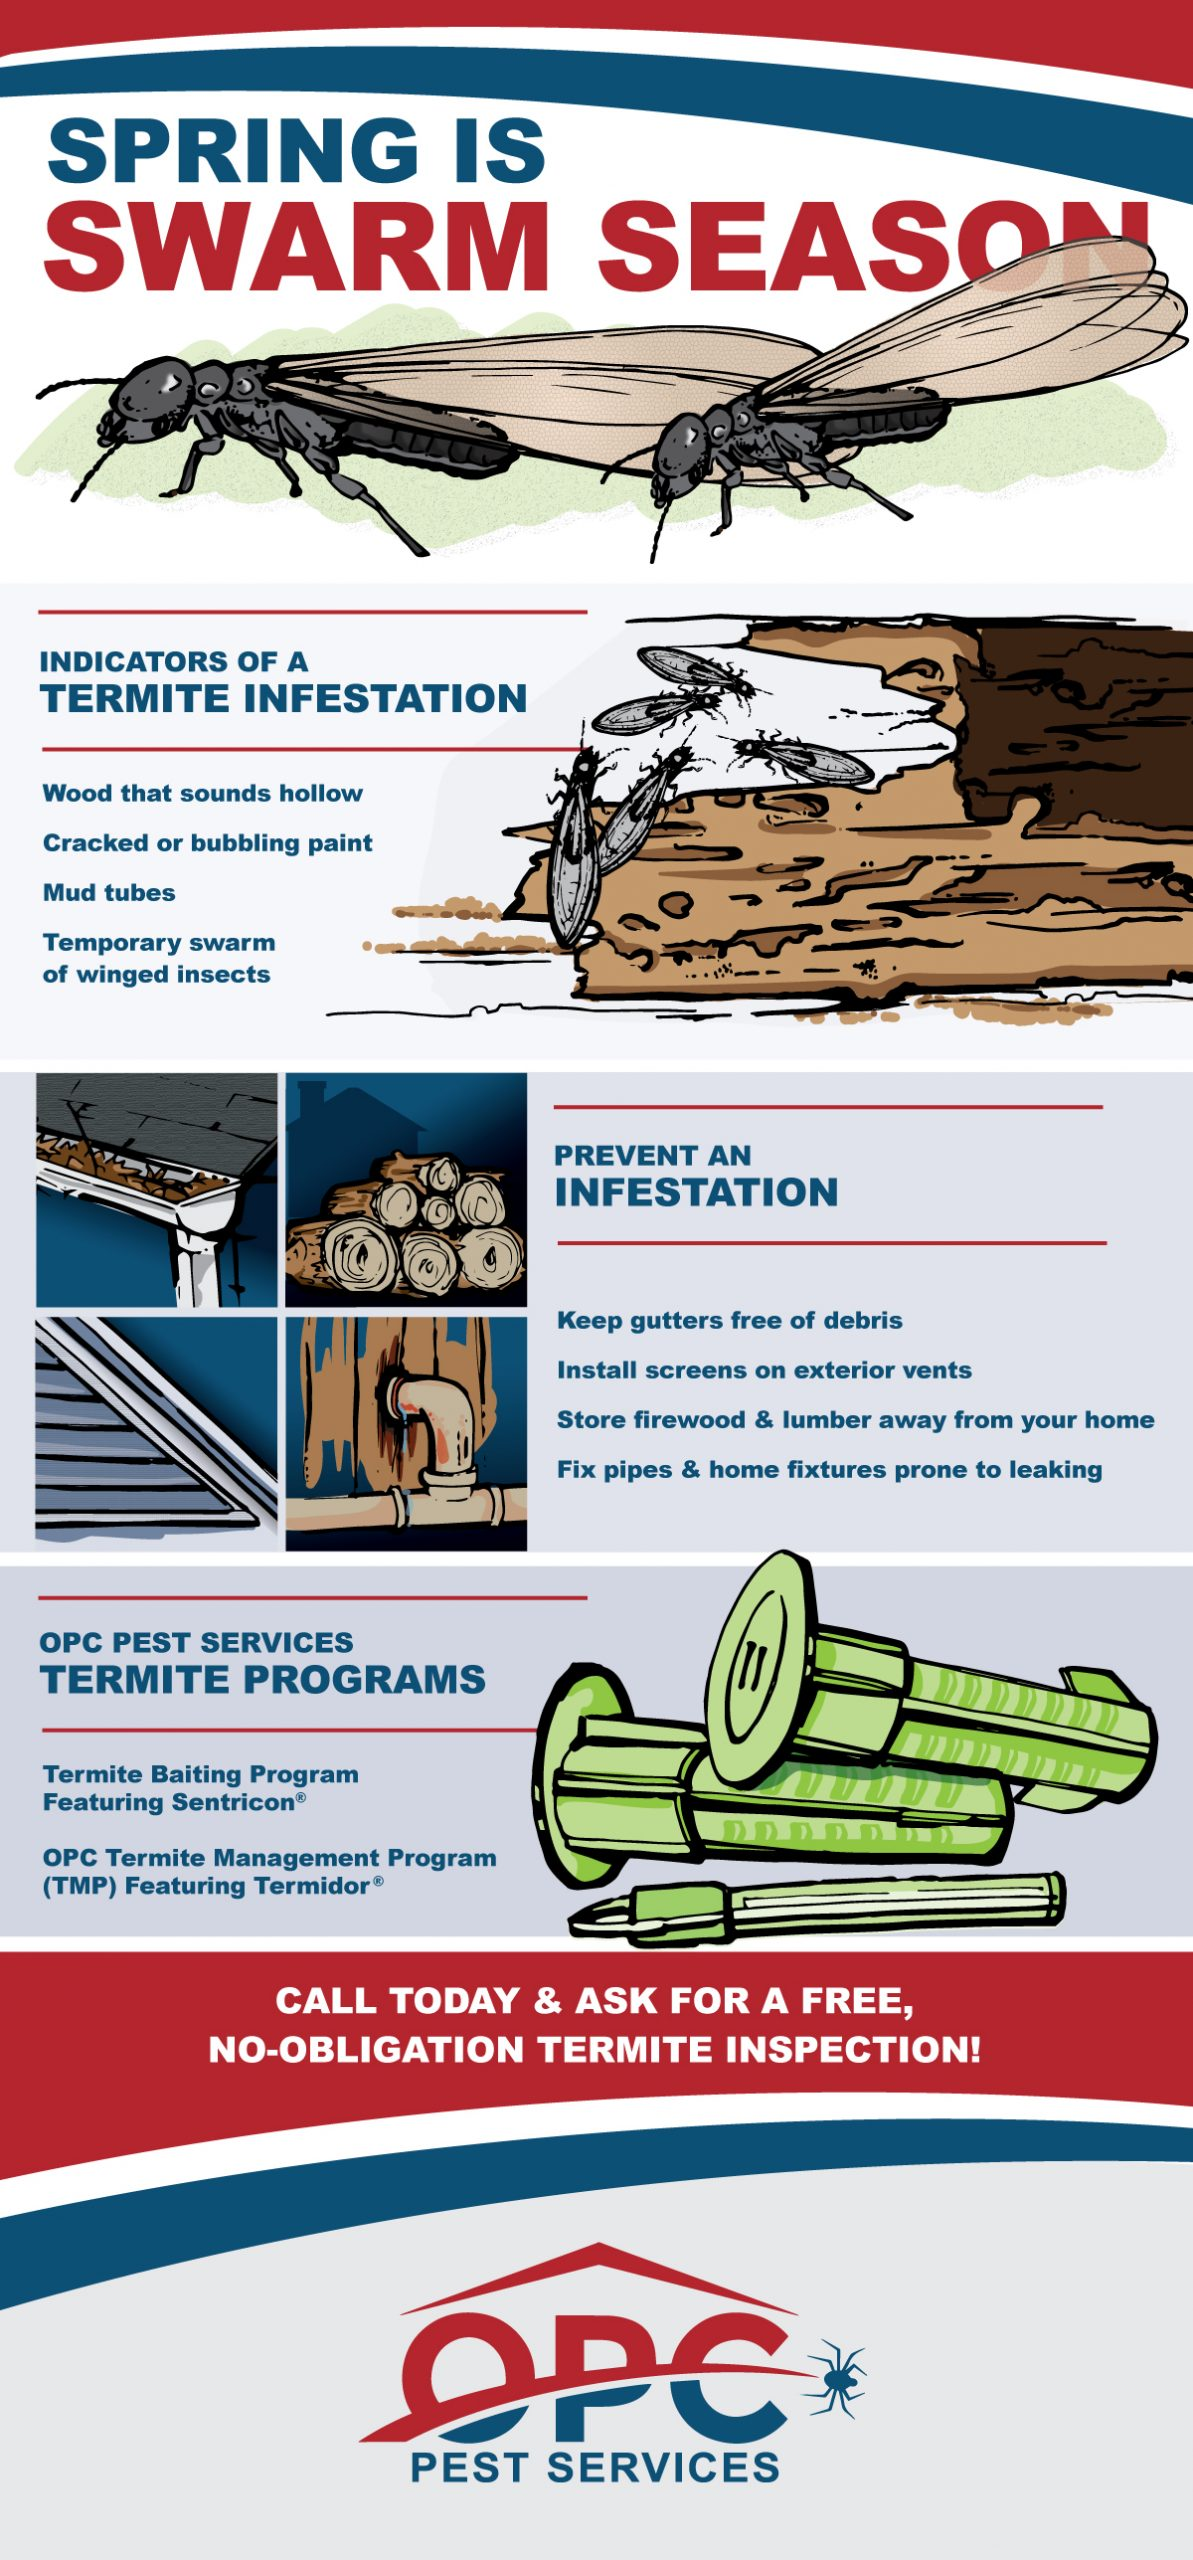 OPC Pest Services - Termite Swarms Infographic